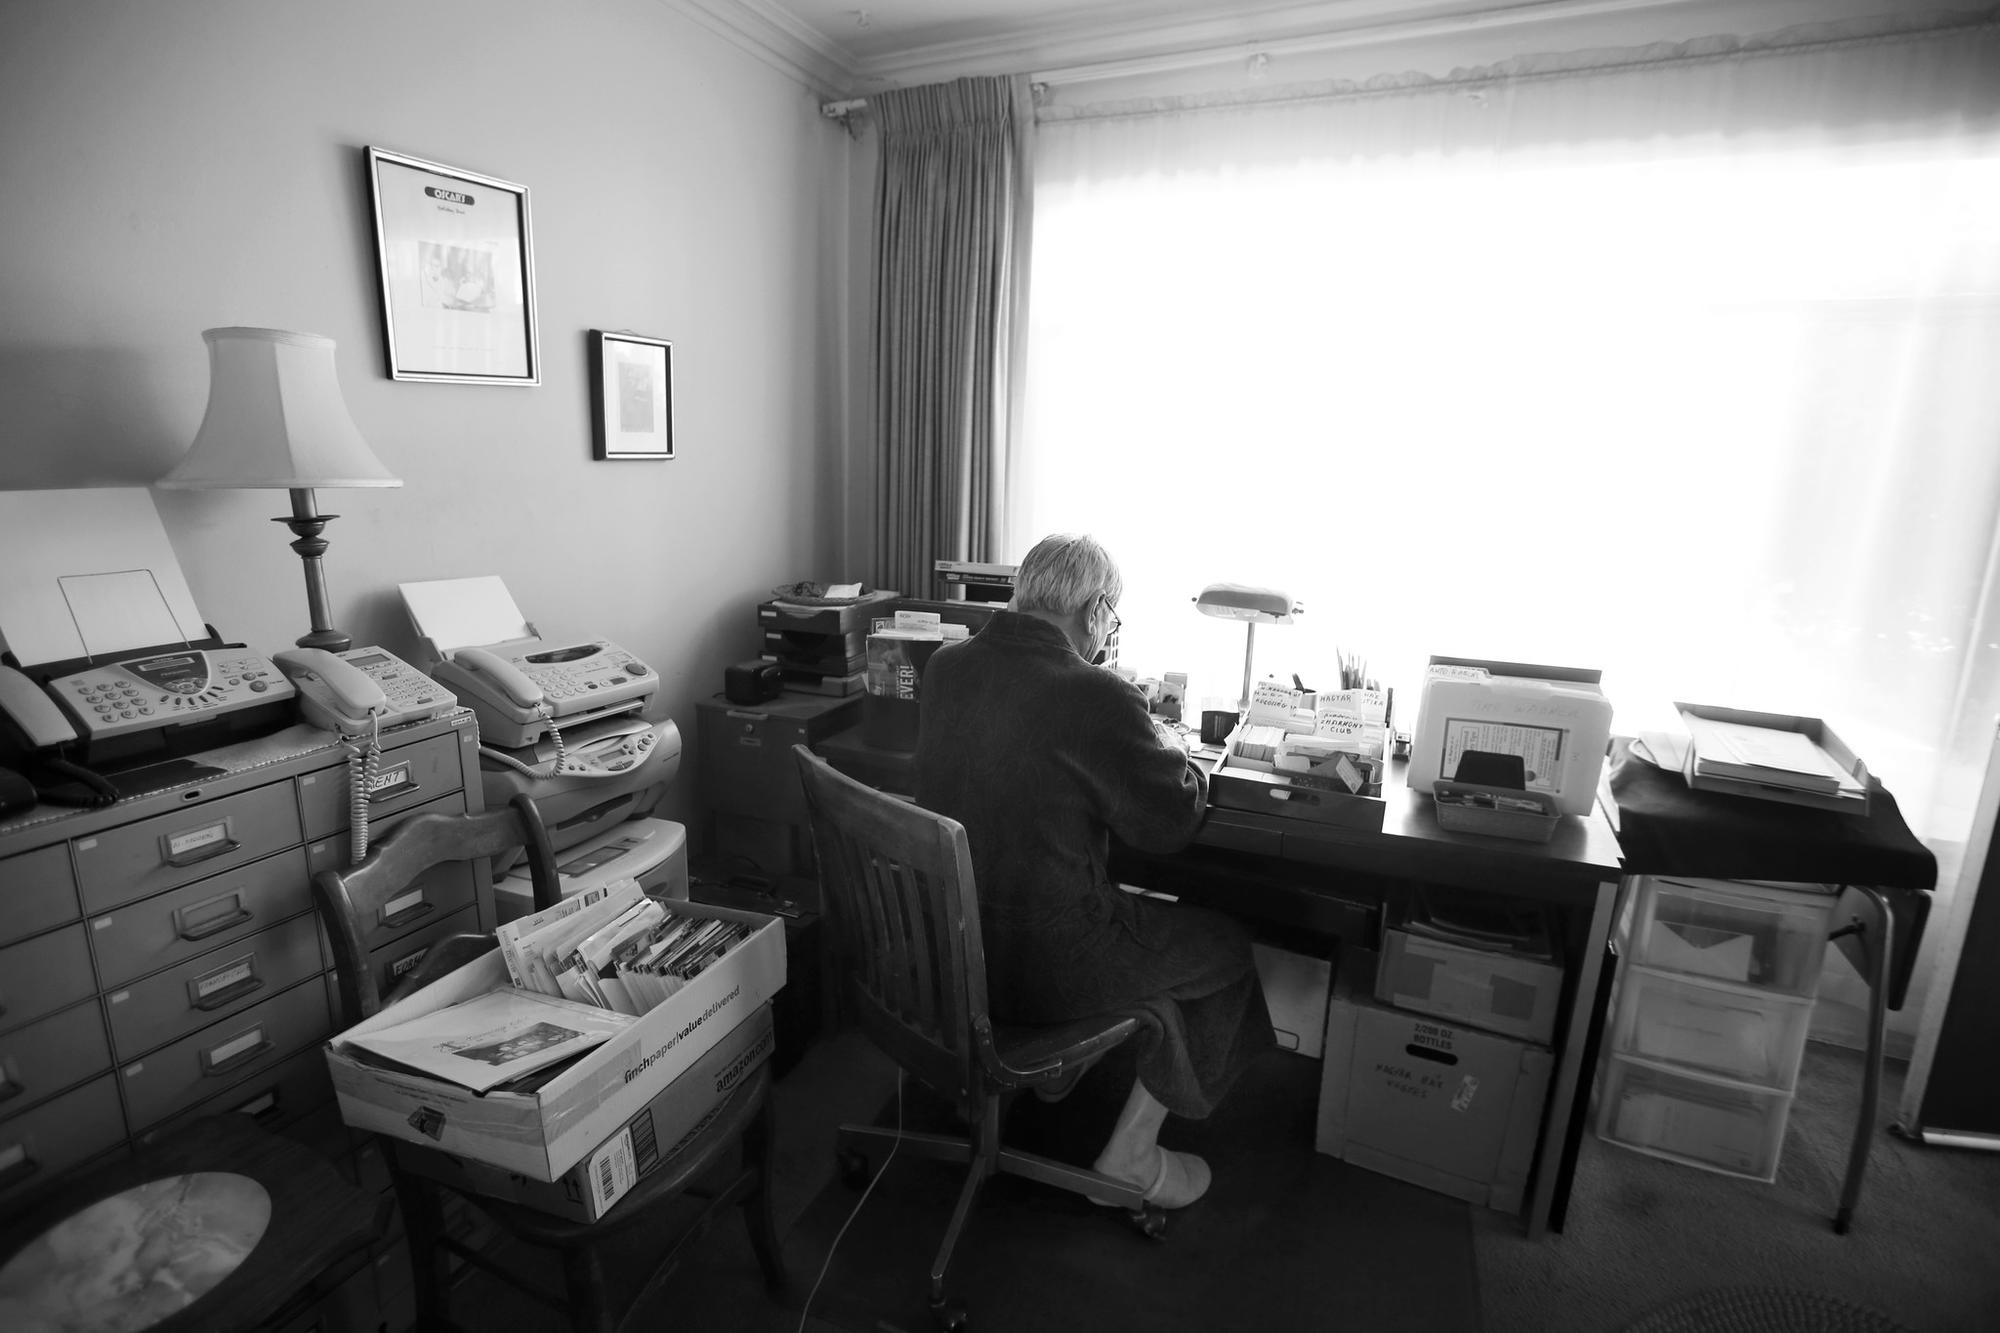 Steve Hideg, 85, looks though paperwork at his desk in his apartment in East Hollywood.